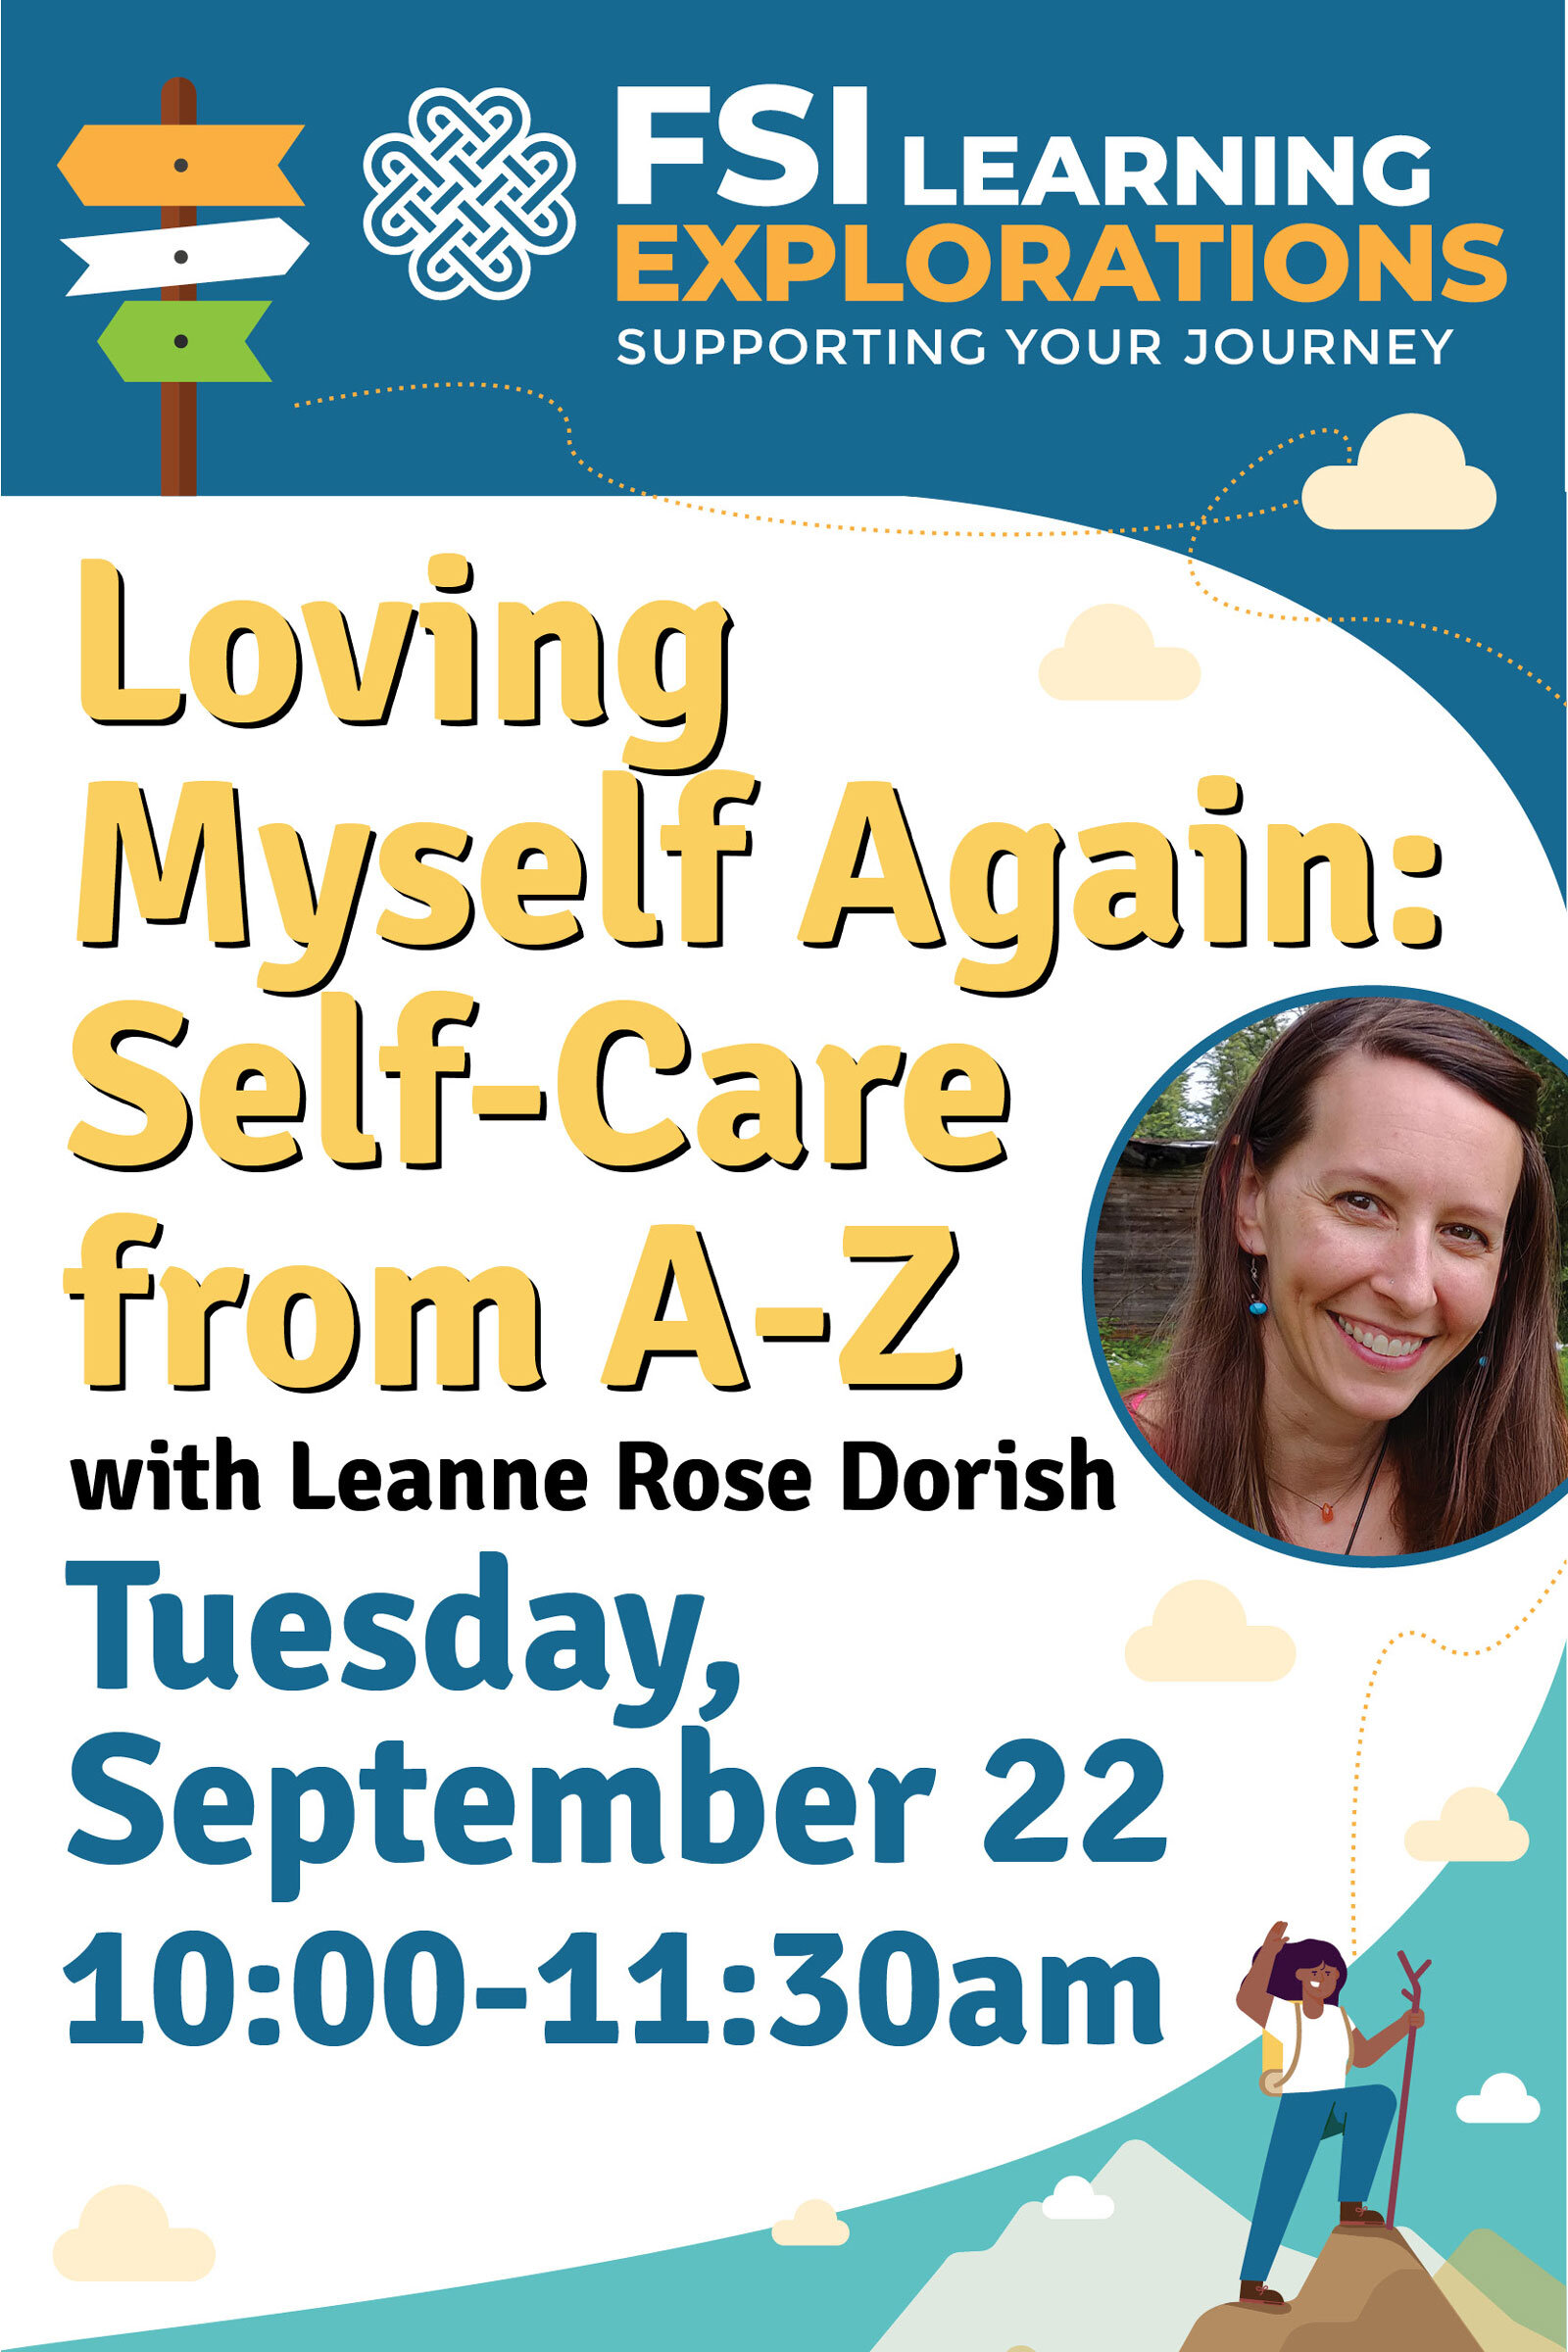 FSI Learning Explorations - Self Care: Loving Myself Again: Self-Care from A-Z